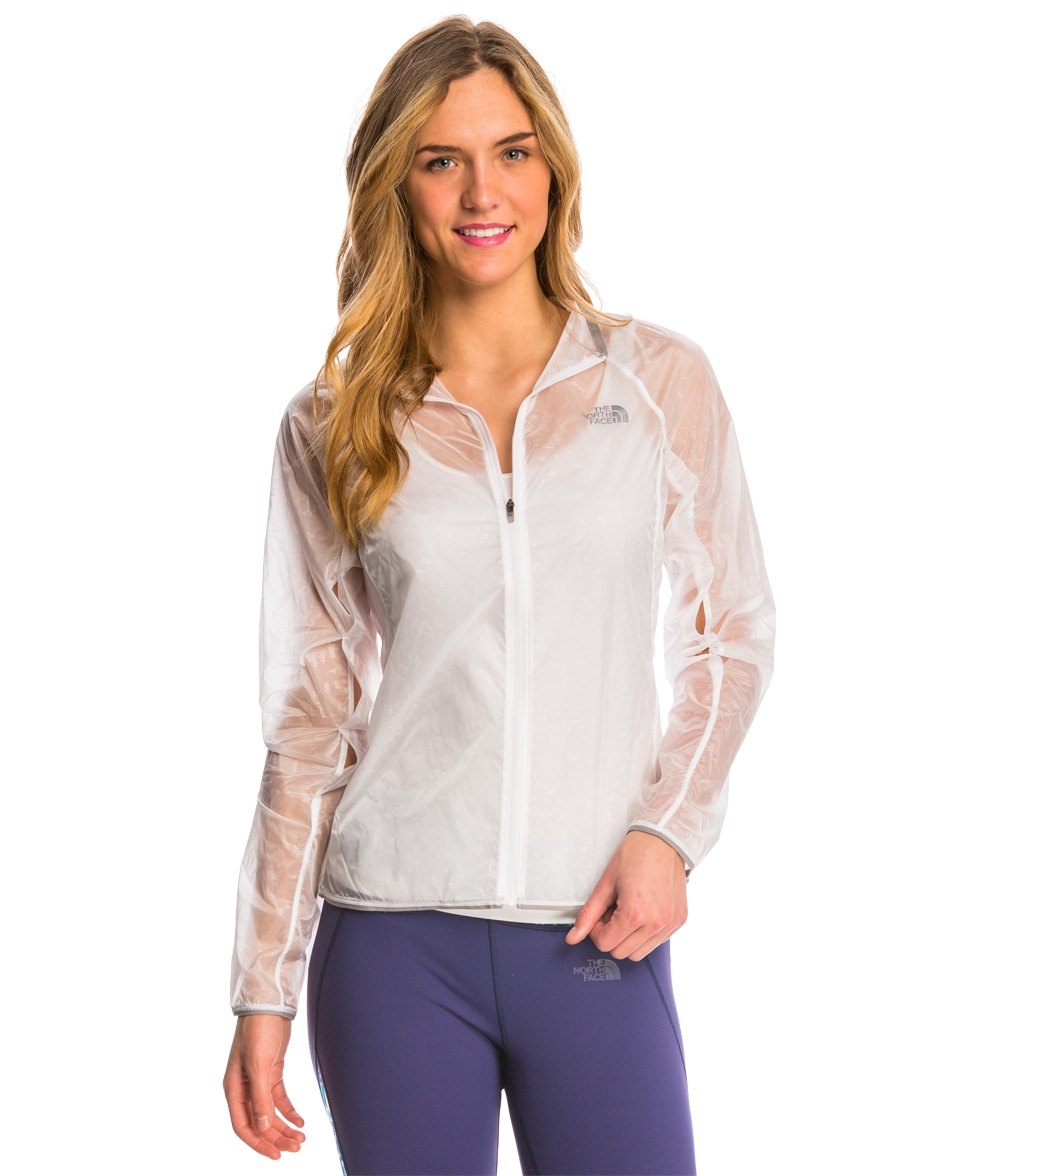 7724bdb32 The North Face Women's Better than Naked Jacket